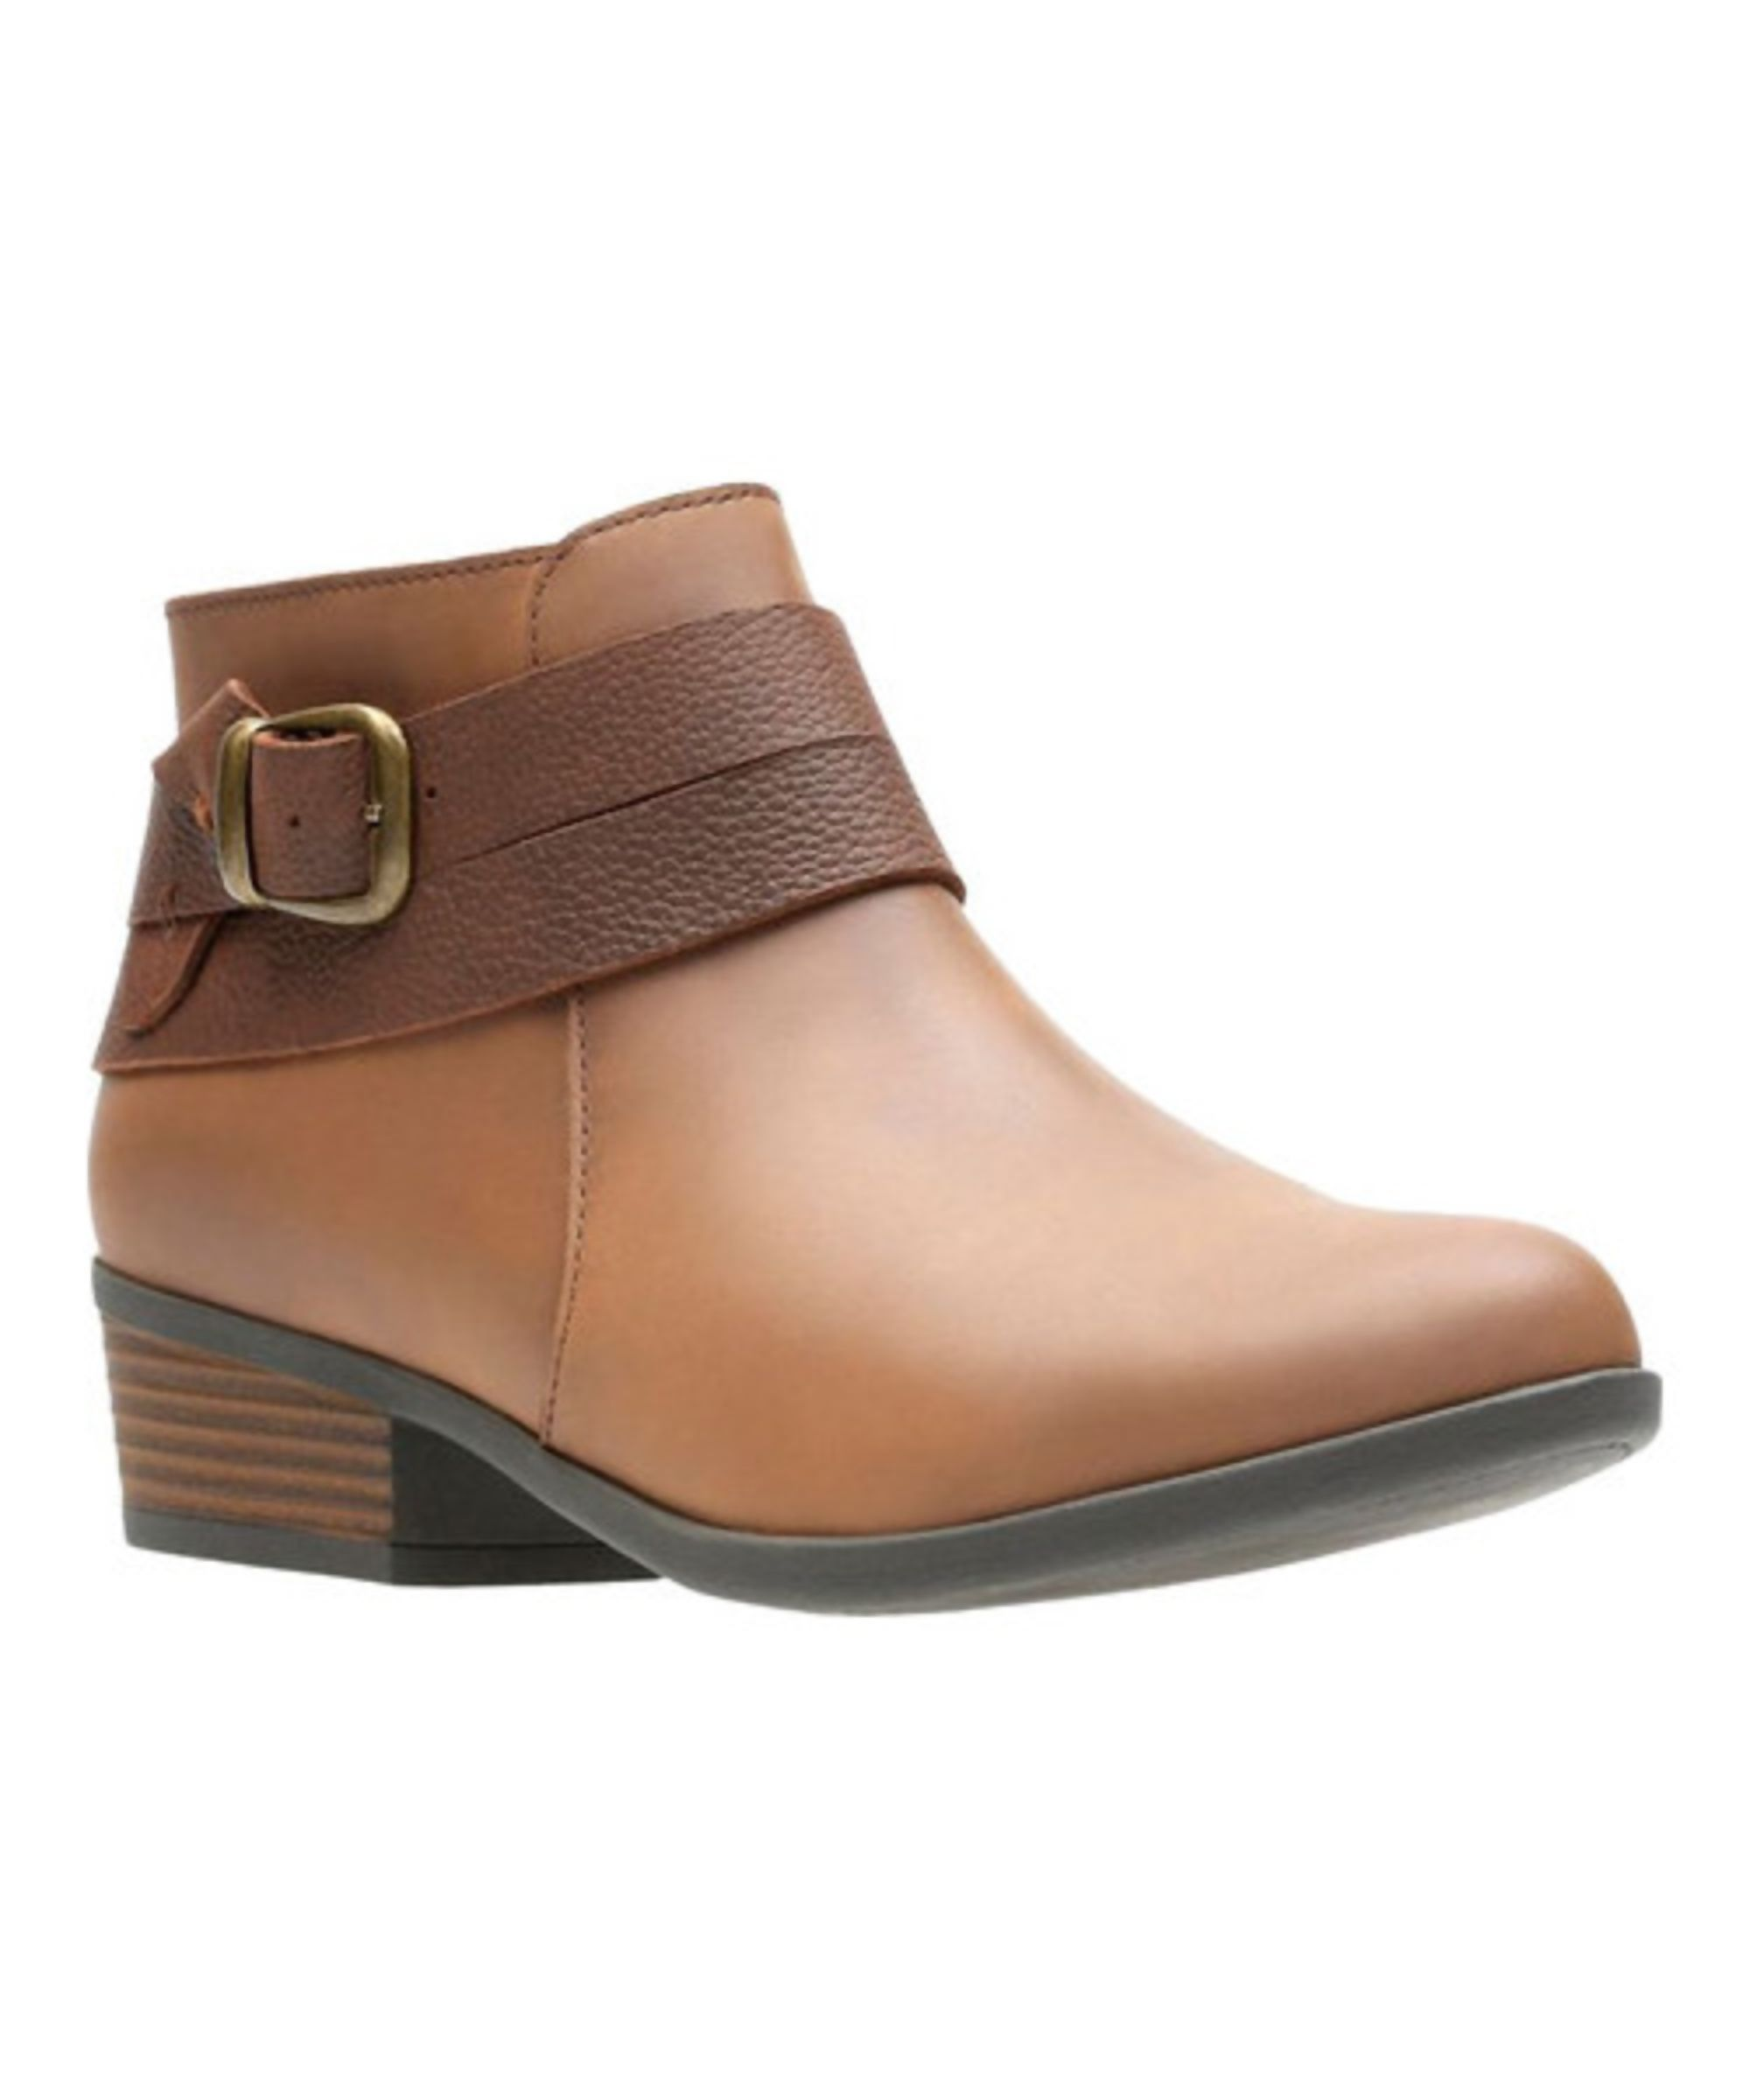 CLARKS | Clarks Women's Addiy Cora Ankle Bootie #Shoes #Boots & Booties # CLARKS